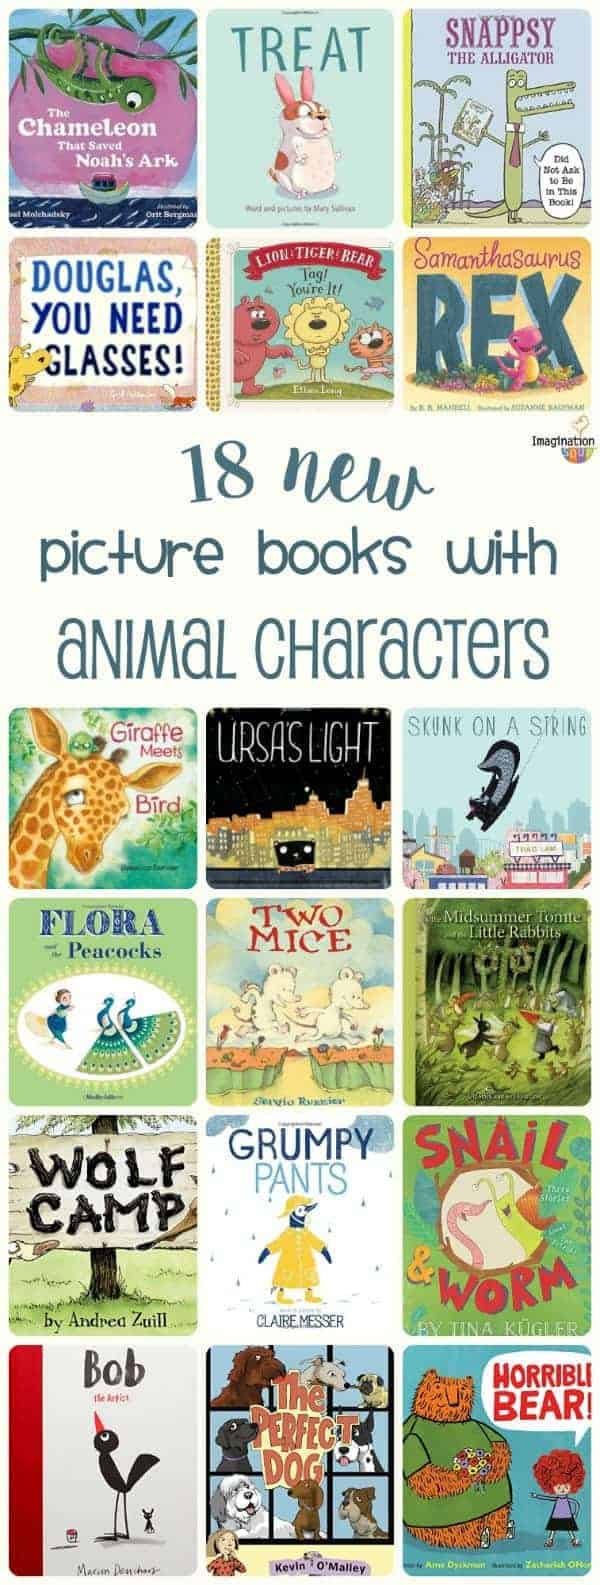 fun picture books starring animal characters, 2016